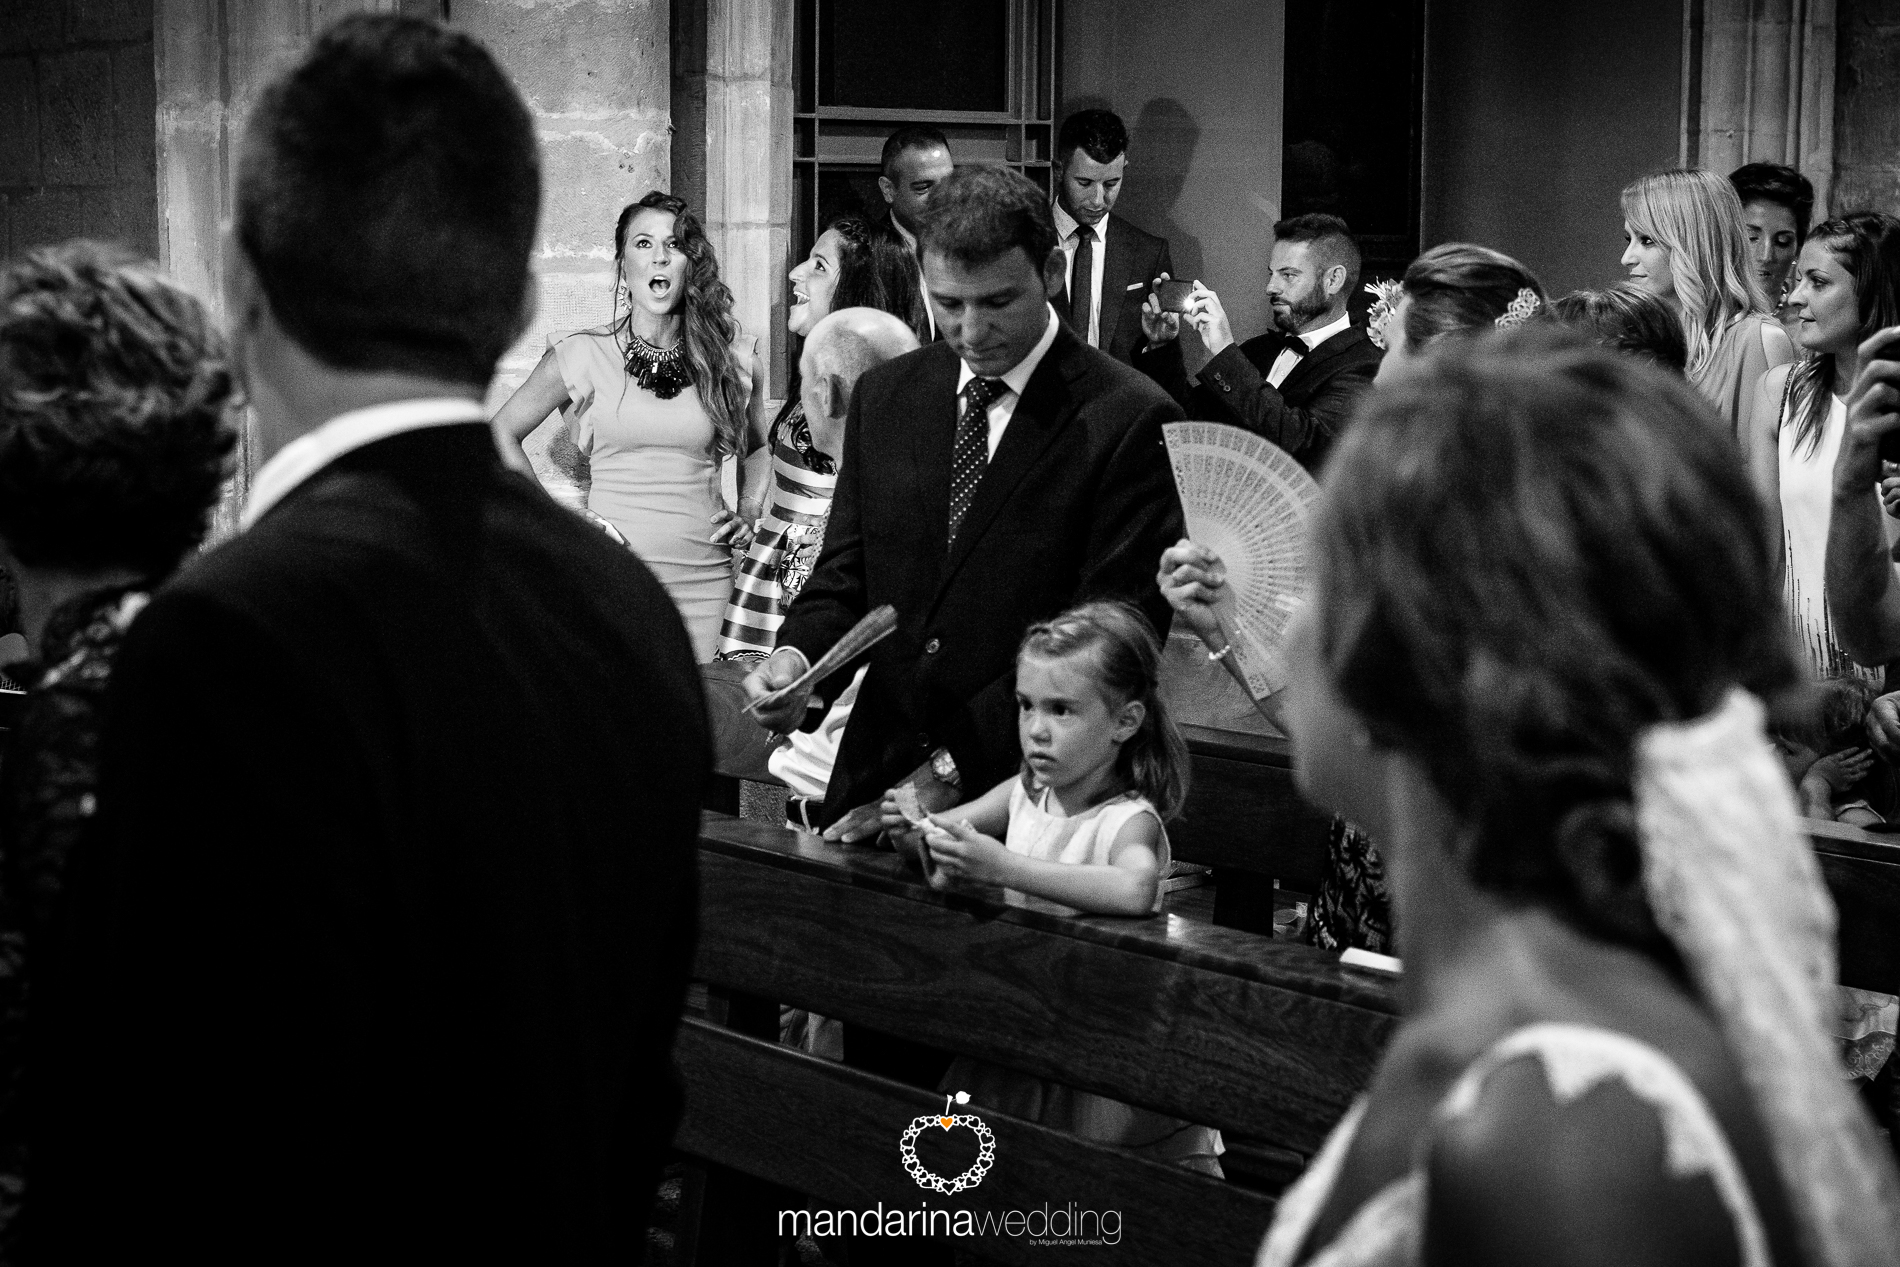 mandarina wedding_22